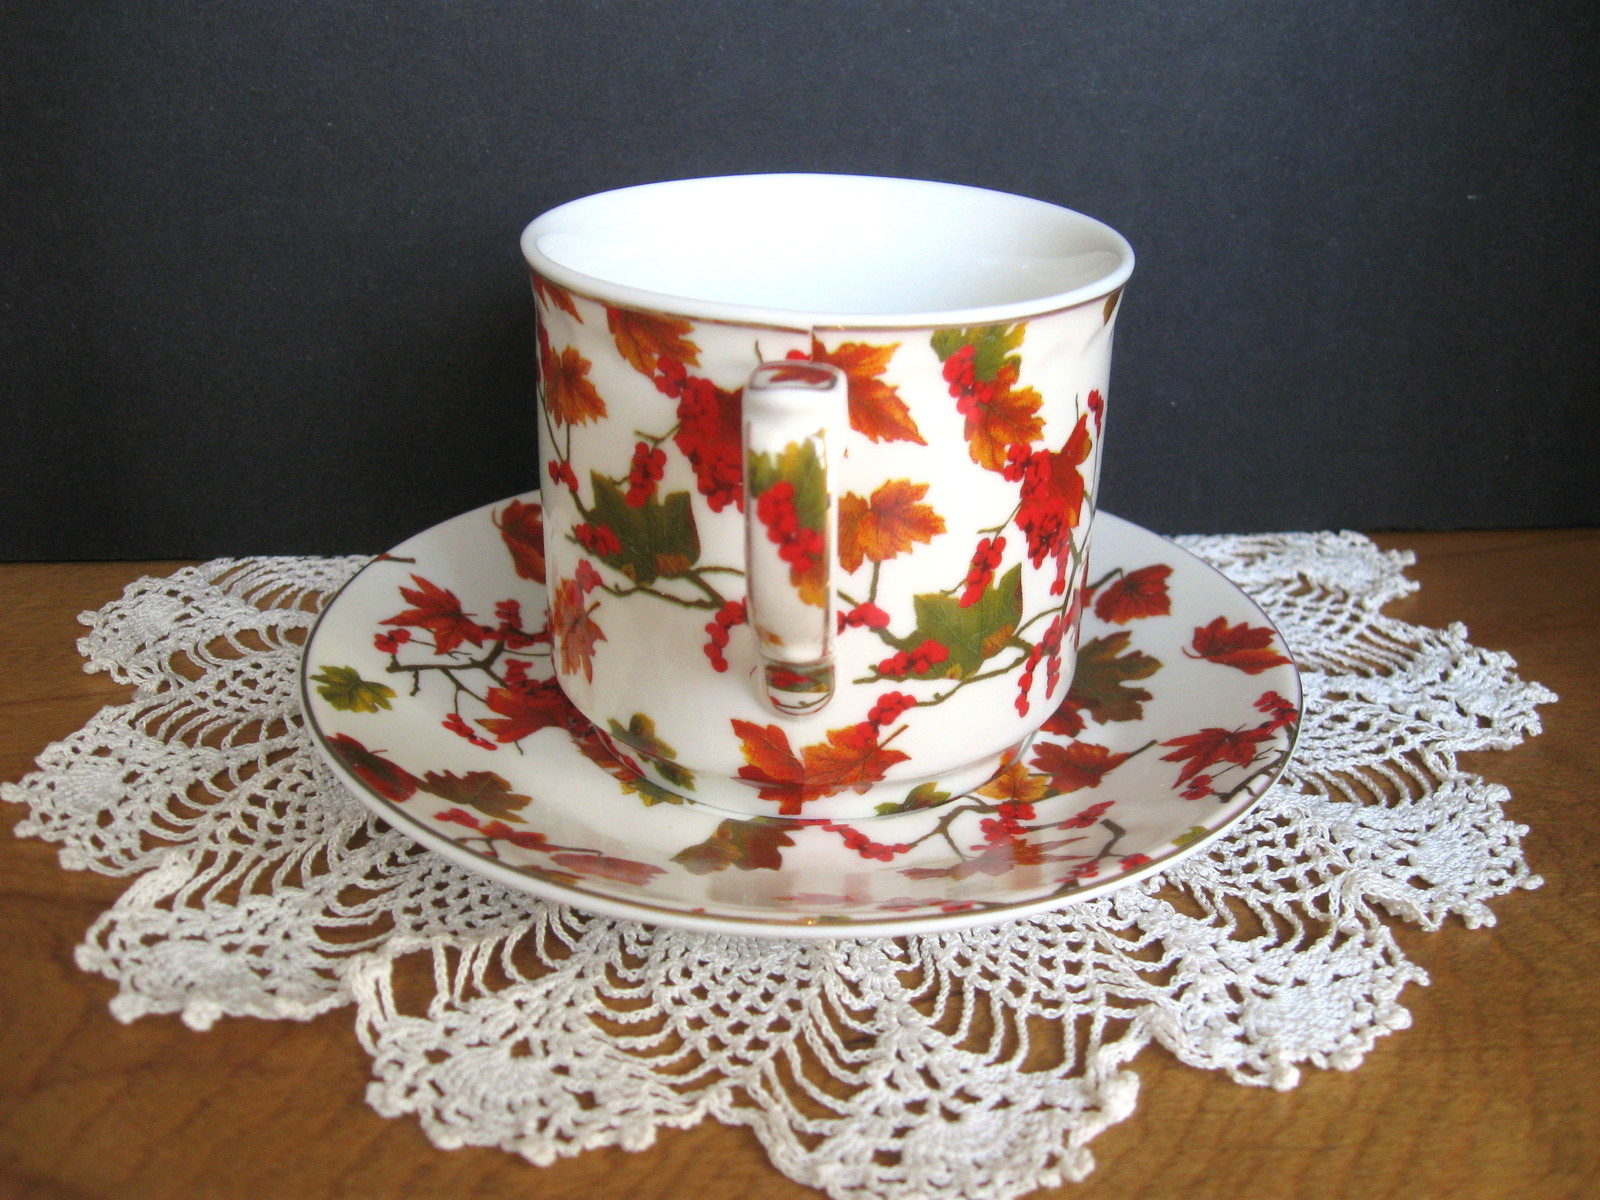 Autumn Leaves Cup and Saucer Set - Four (4) Available